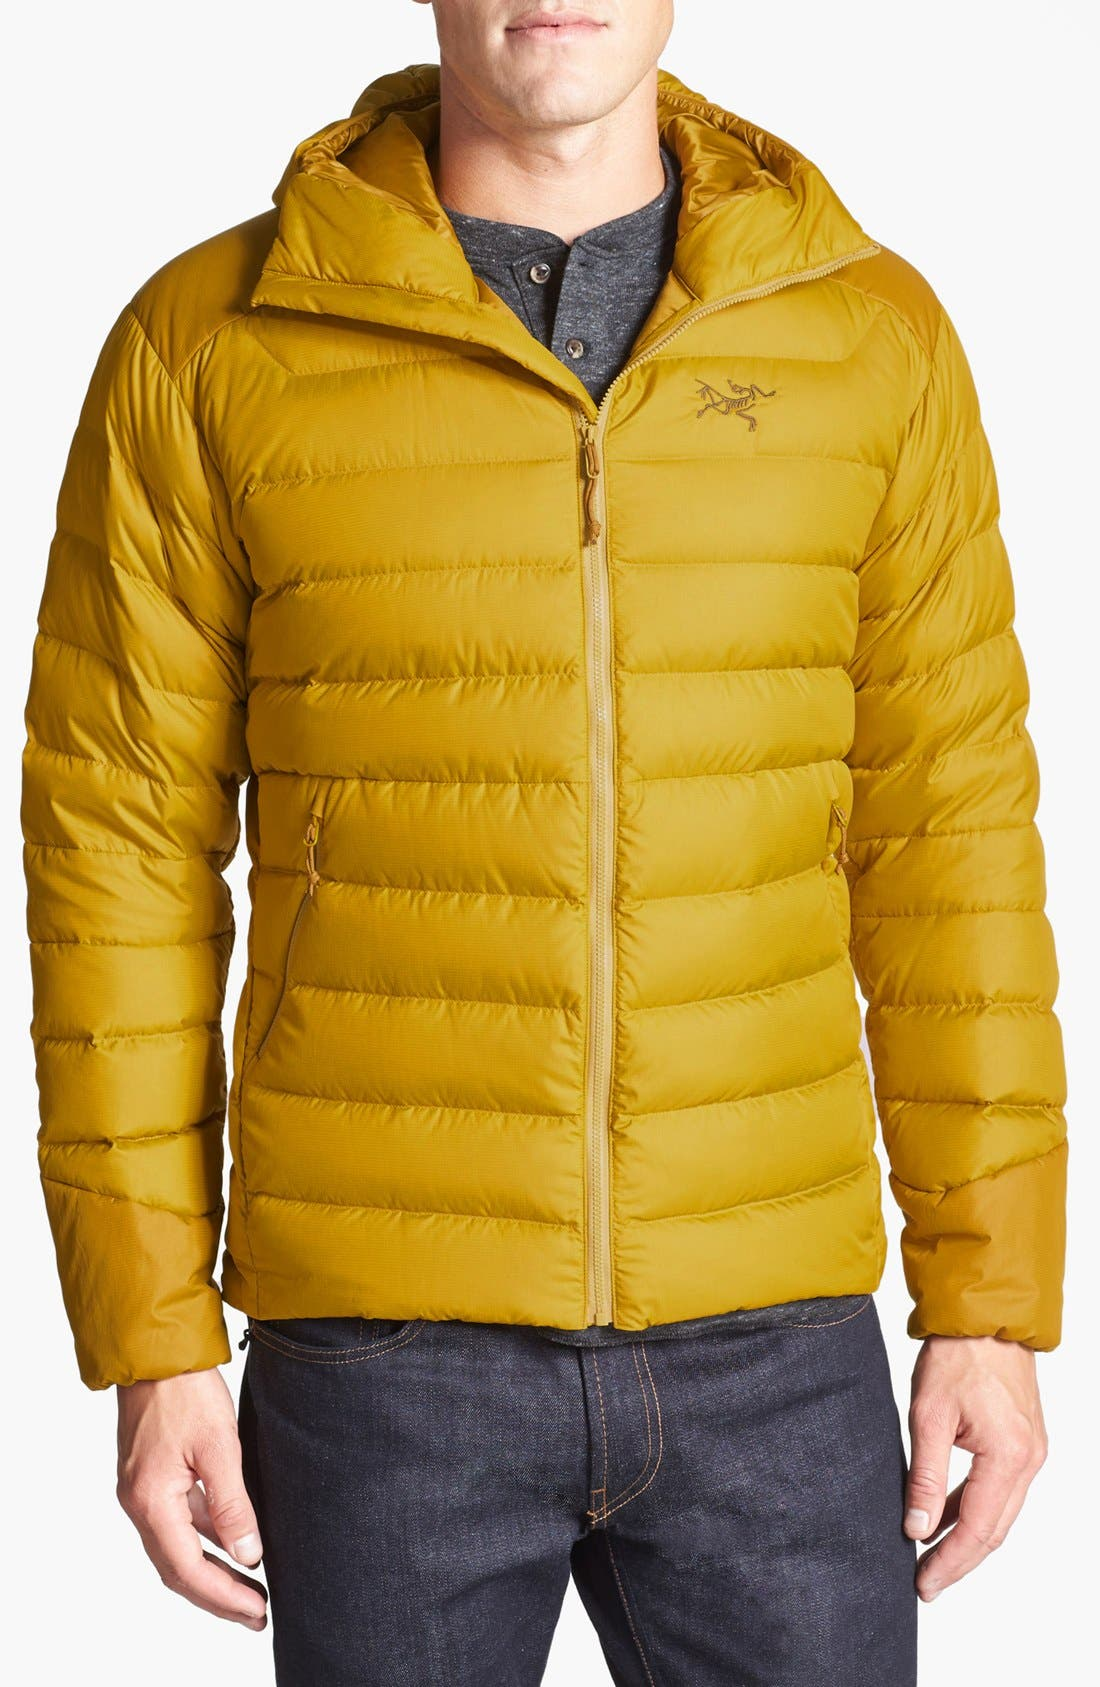 Alternate Image 1 Selected - Arc'teryx 'Thorium AR' Athletic Fit Hooded Down Jacket